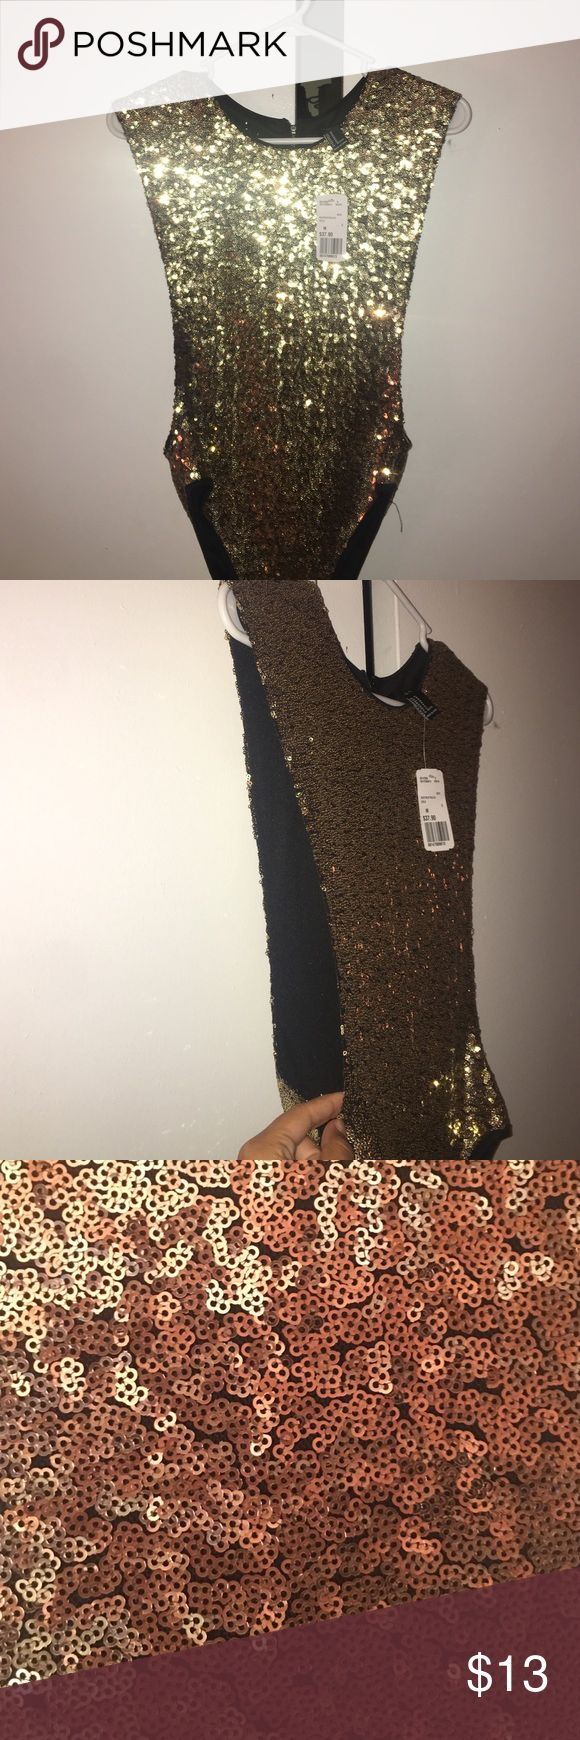 Gold bodysuit Forever21 gold bodysuit. New with tags and perfect for NYE Forever 21 Other